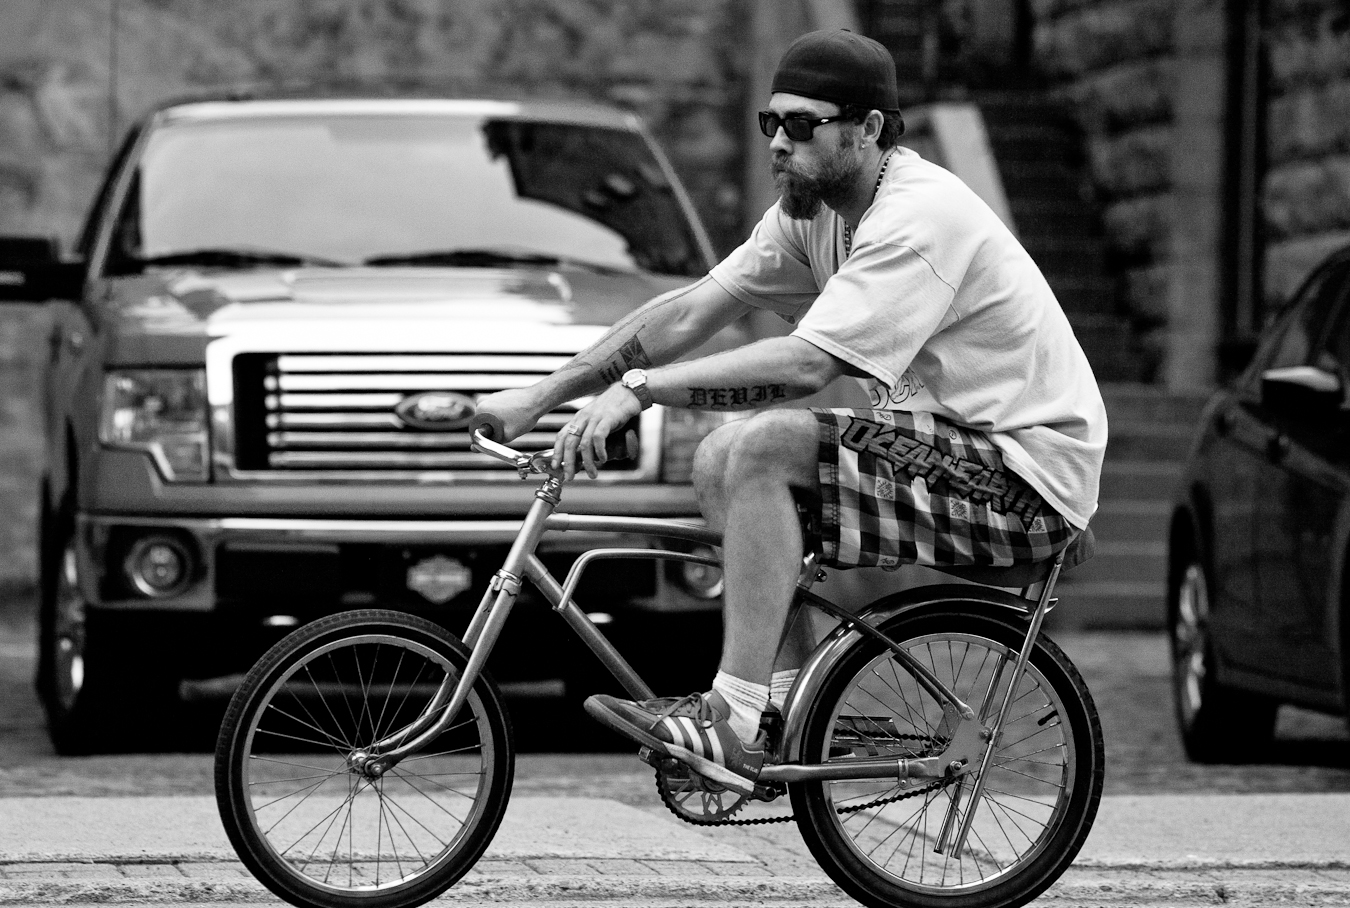 Gentleman cycles his Lowrider shot by D.Edwards